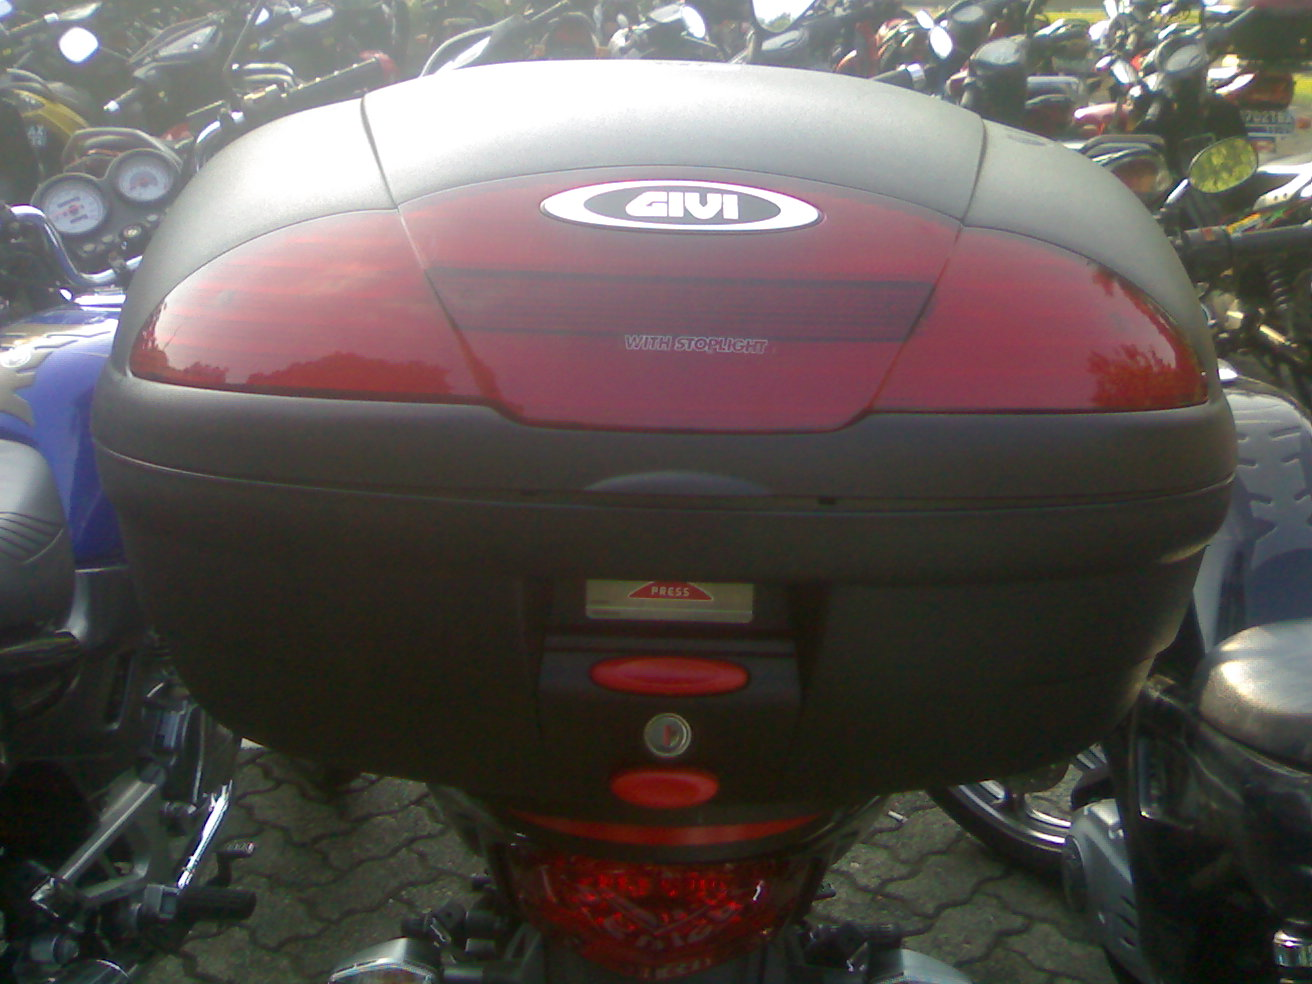 ... Box Givi E45+Braket Givi MR4 » Bonus Box Givi E45+Braket Givi MR4